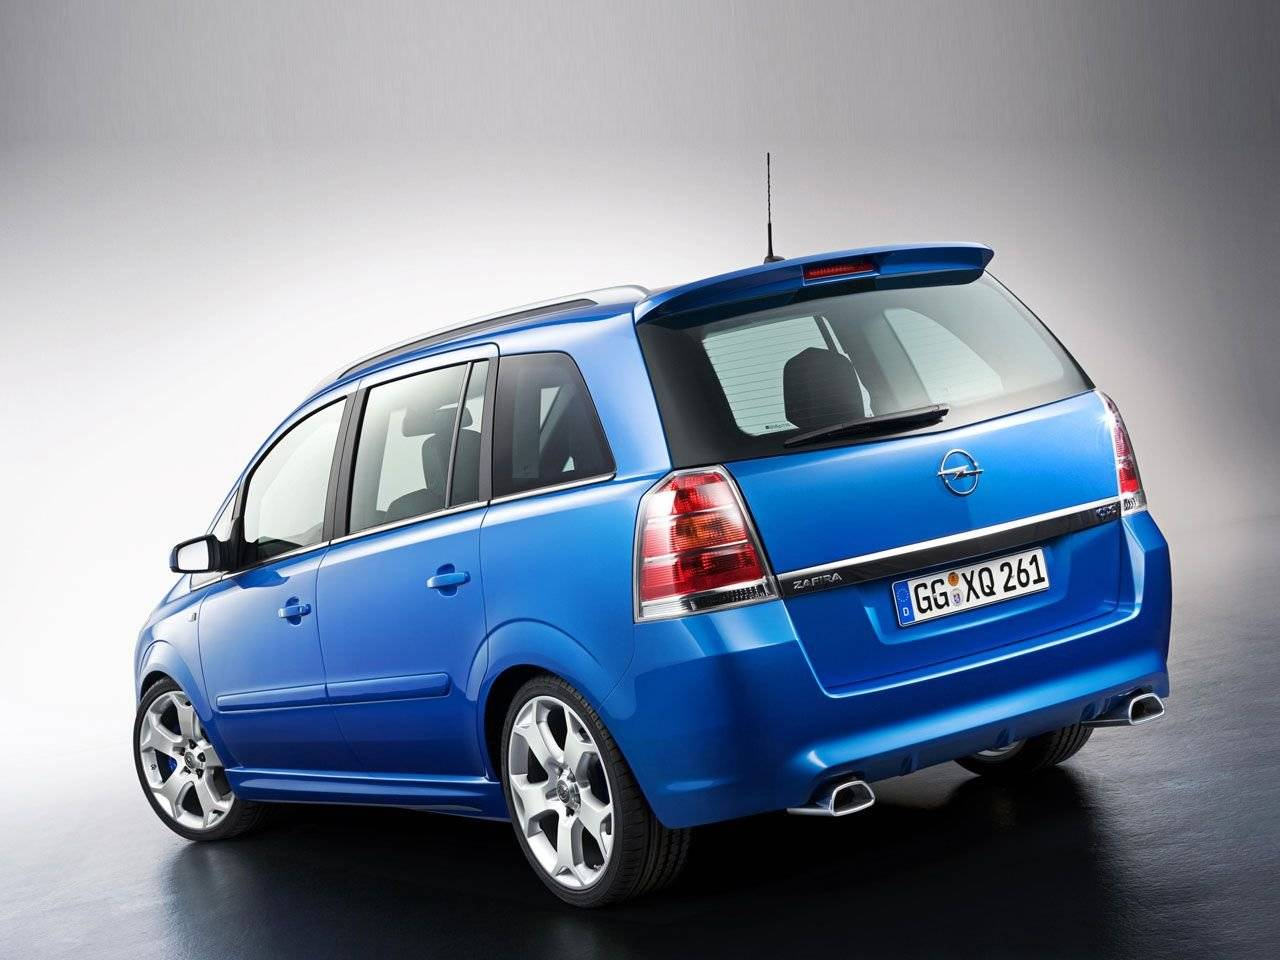 opel zafira opc met 240 pk autonieuws. Black Bedroom Furniture Sets. Home Design Ideas